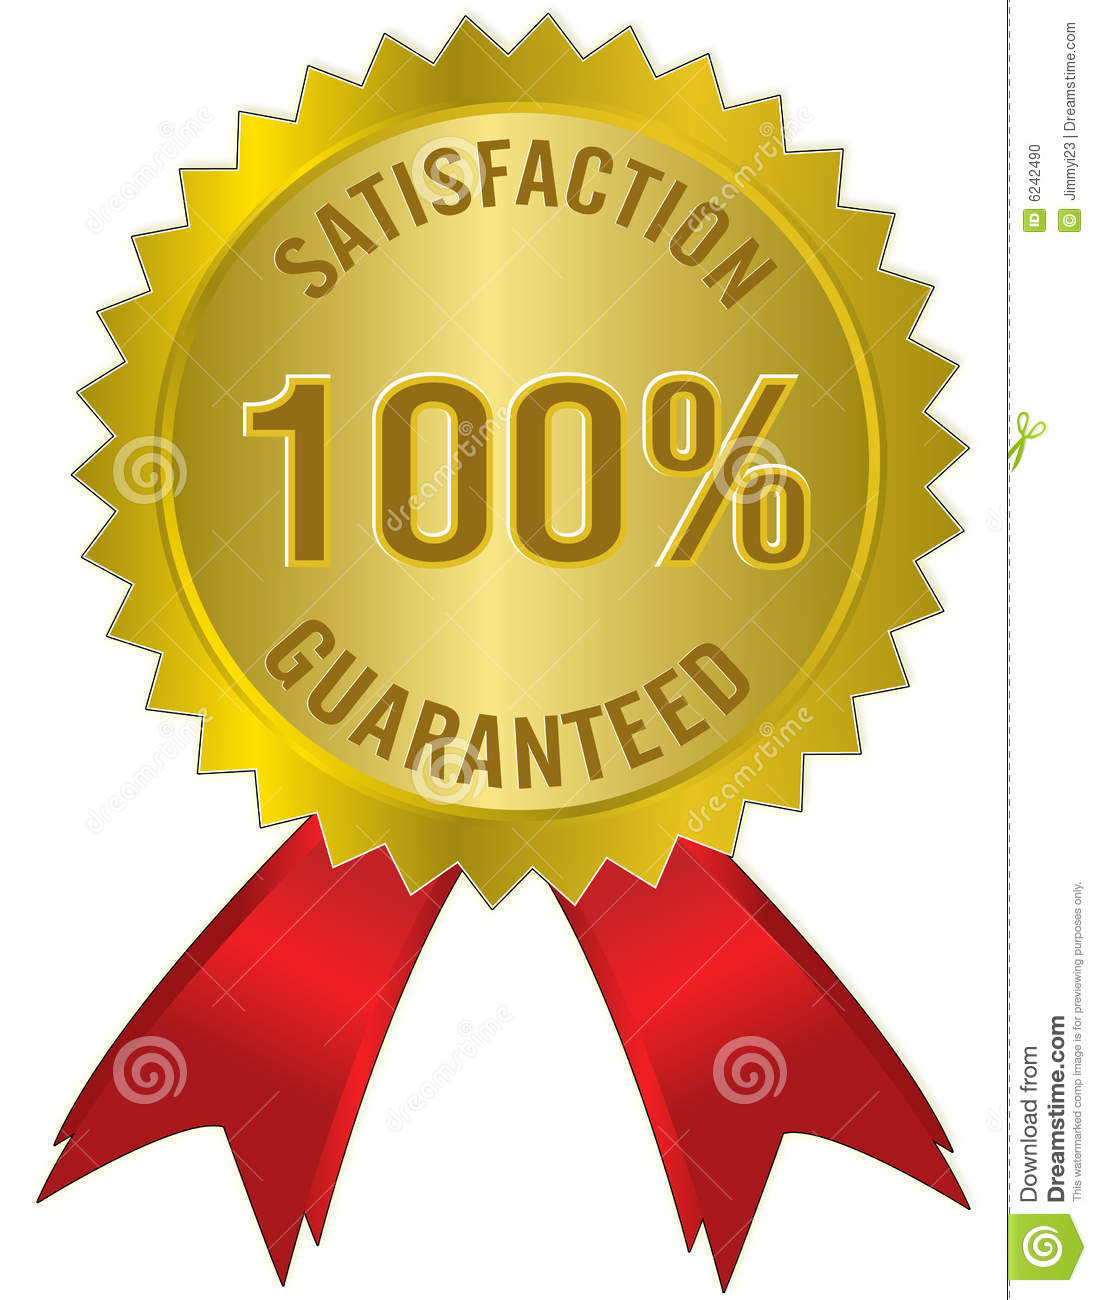 Satisfaction Guaranteed Stock Vector Image Of Badges. Nashville Public Relations Firms. Top Ten Executive Search Firms. Journalism Schools In Chicago. Nurse Aide Registry Michigan. Banquet Halls In Schaumburg Pwc Tax Services. Moreland Veterinary Hospital. Hotels In Albuquerque New Mexico With Indoor Pool. Photography Business Class Texas Art Schools